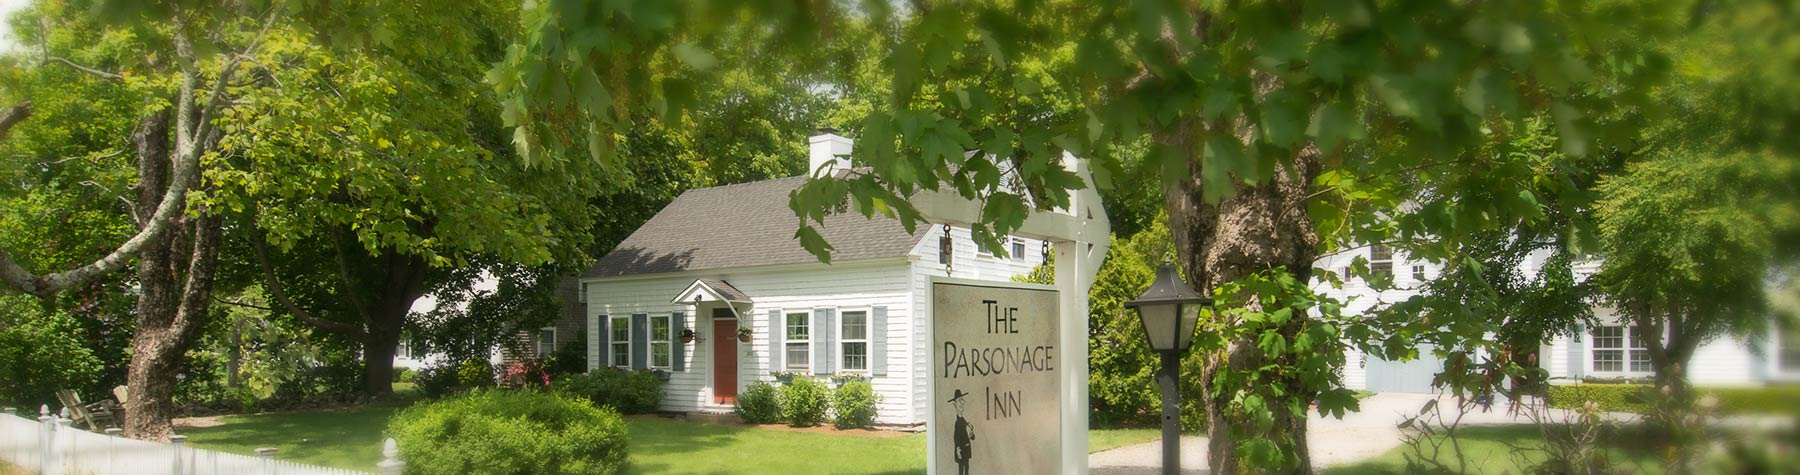 The Parsonage Inn Exterior